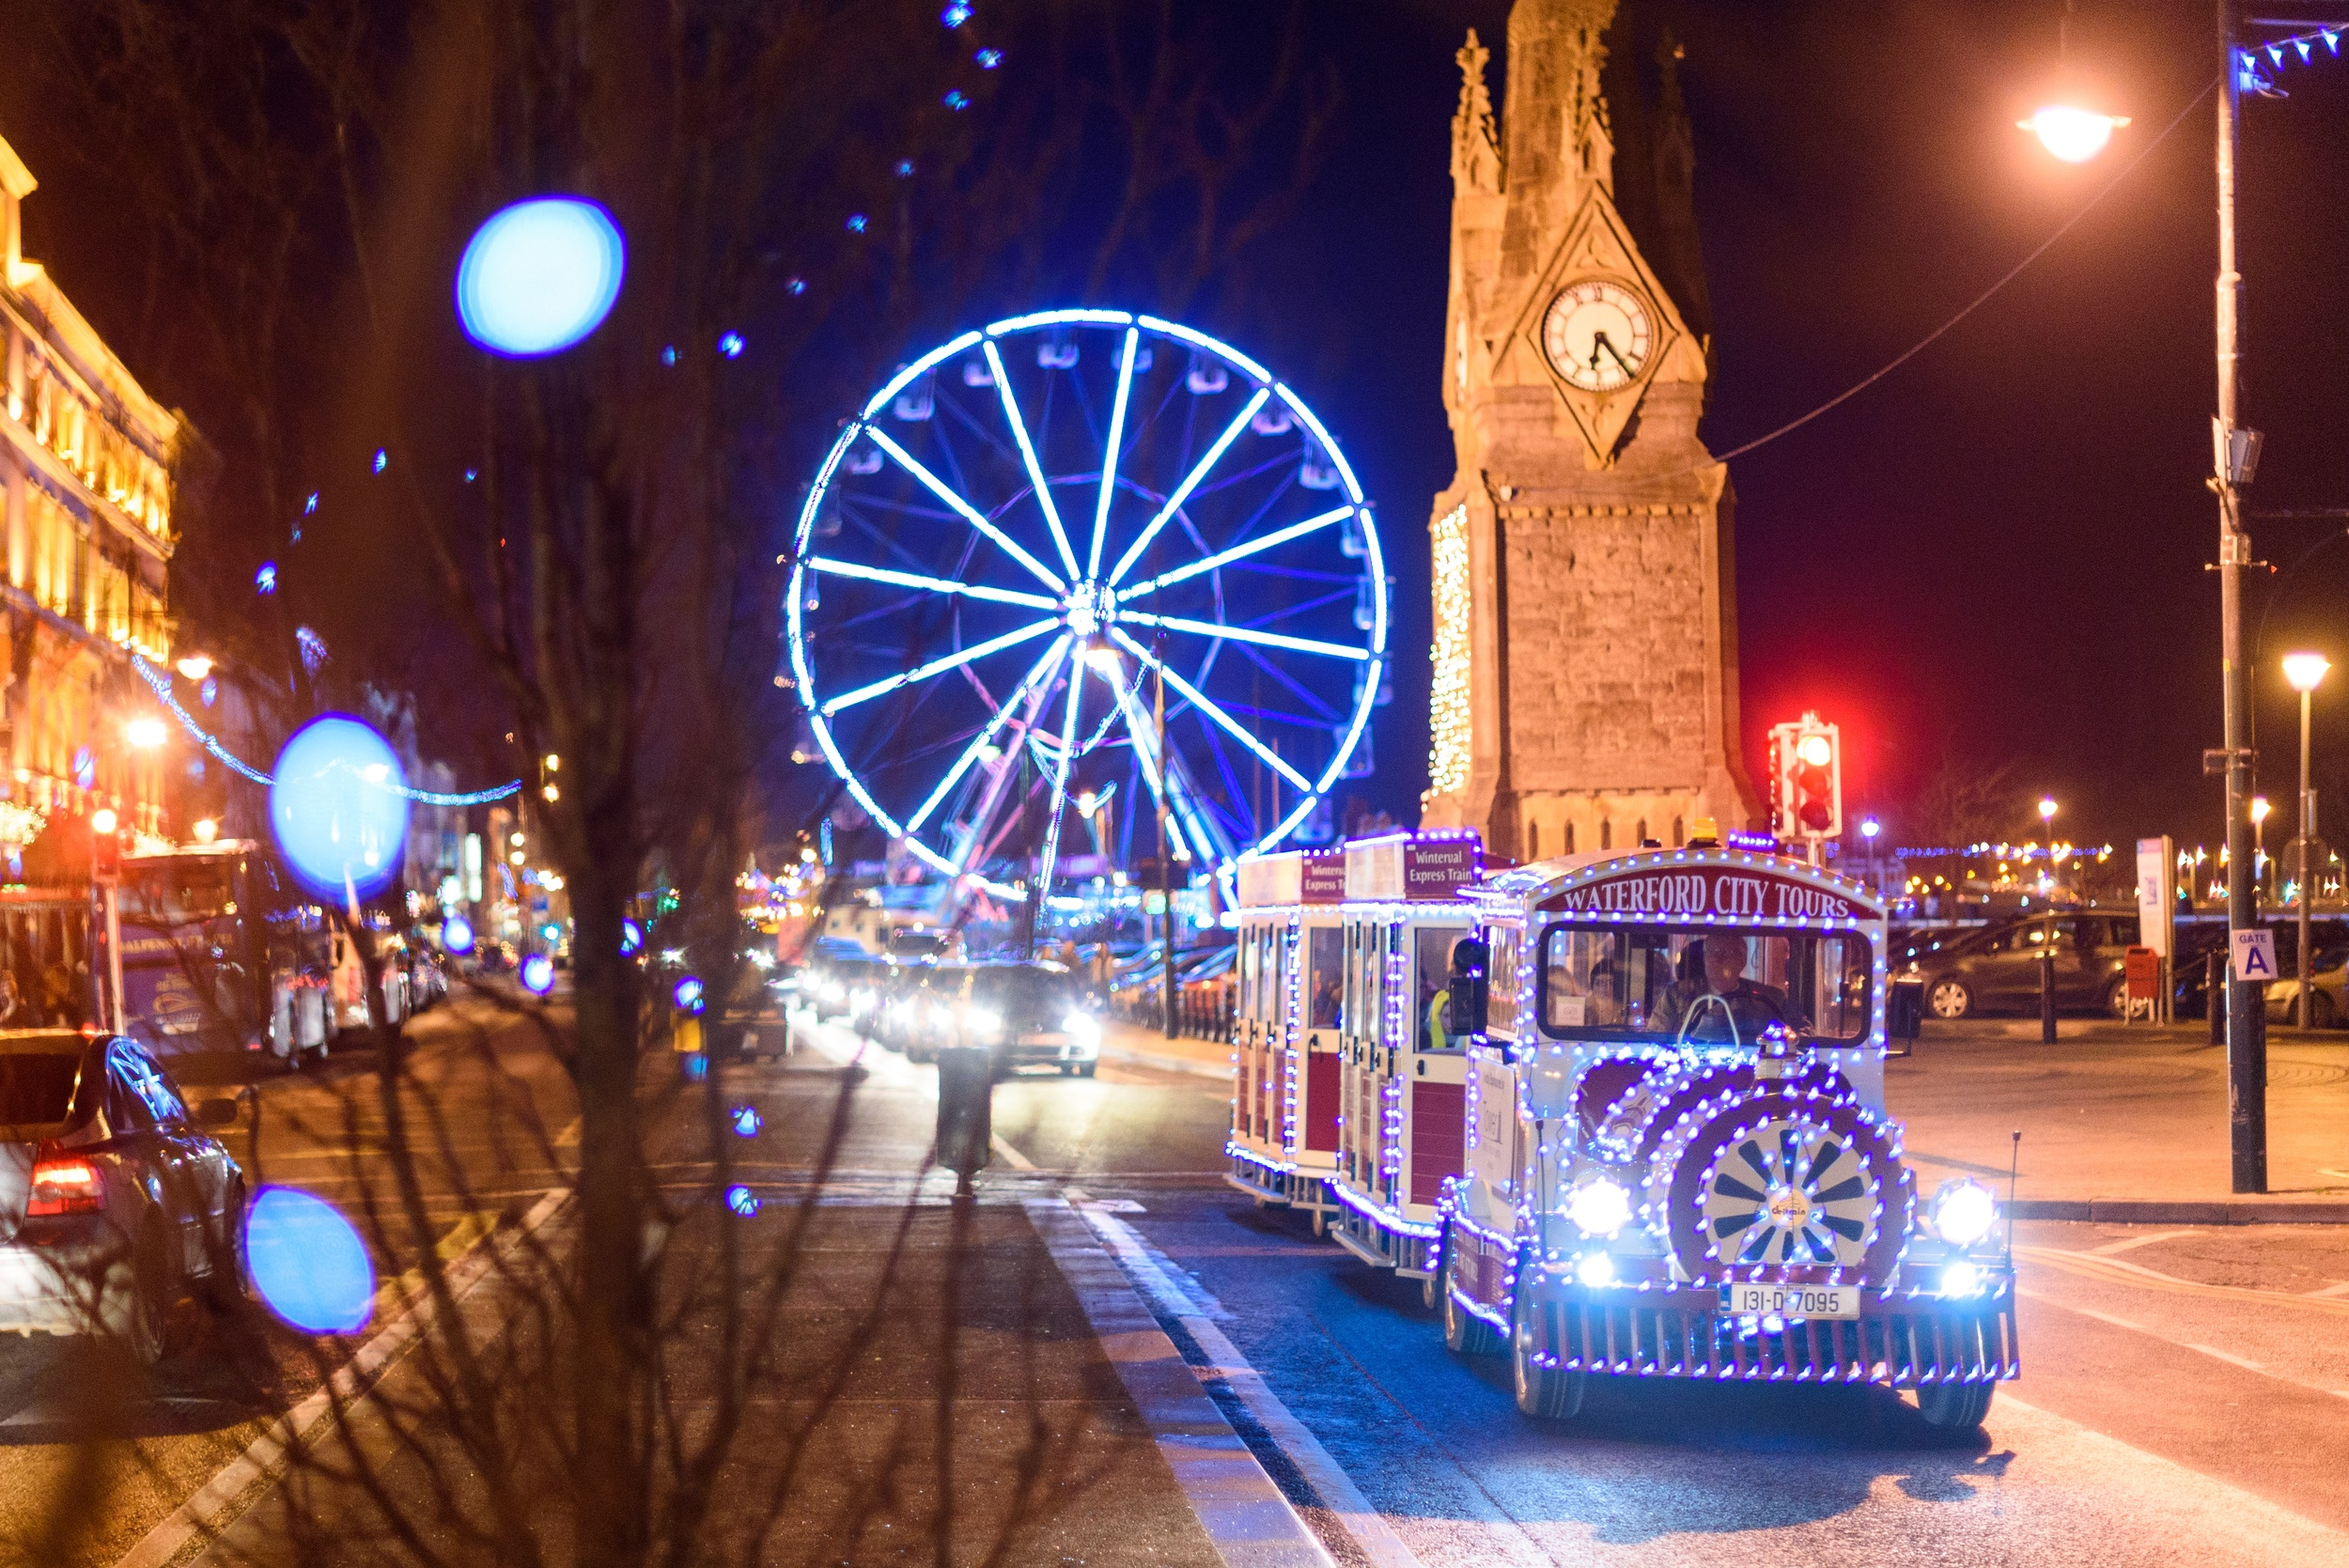 Winterval in Waterford, Ireland's Largest Christmas Festival | Traveling in Ireland Podcast Episode 62